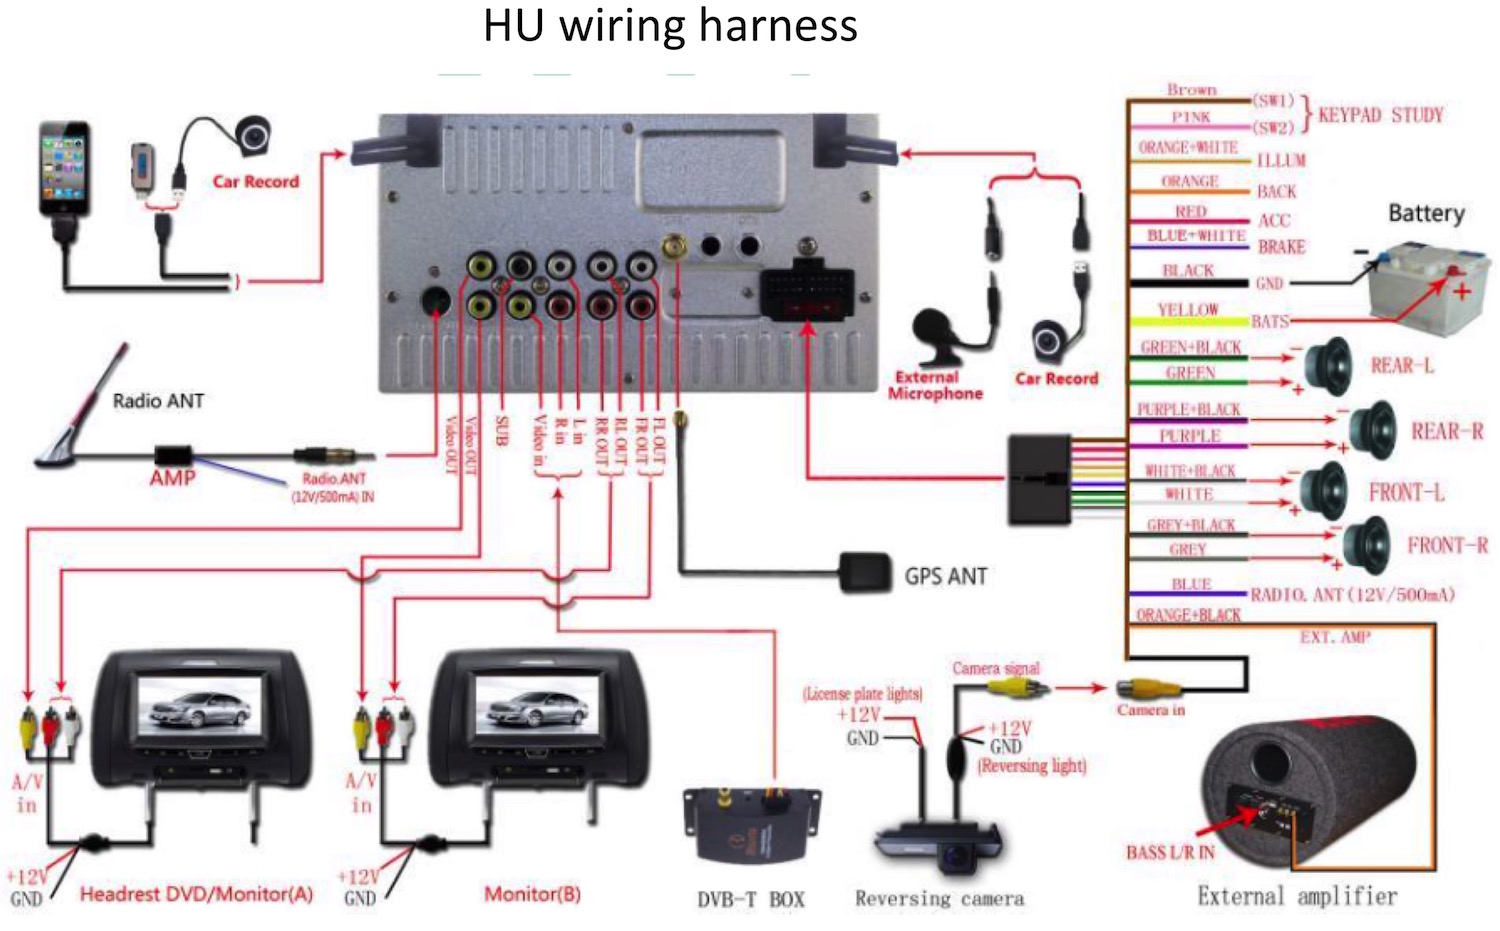 steering wheel control android hu out metra aswc here is the head unit wiring diagram from the pdf manual sorry i don t have a better image of this one the only wire i didn t connect is the orange back